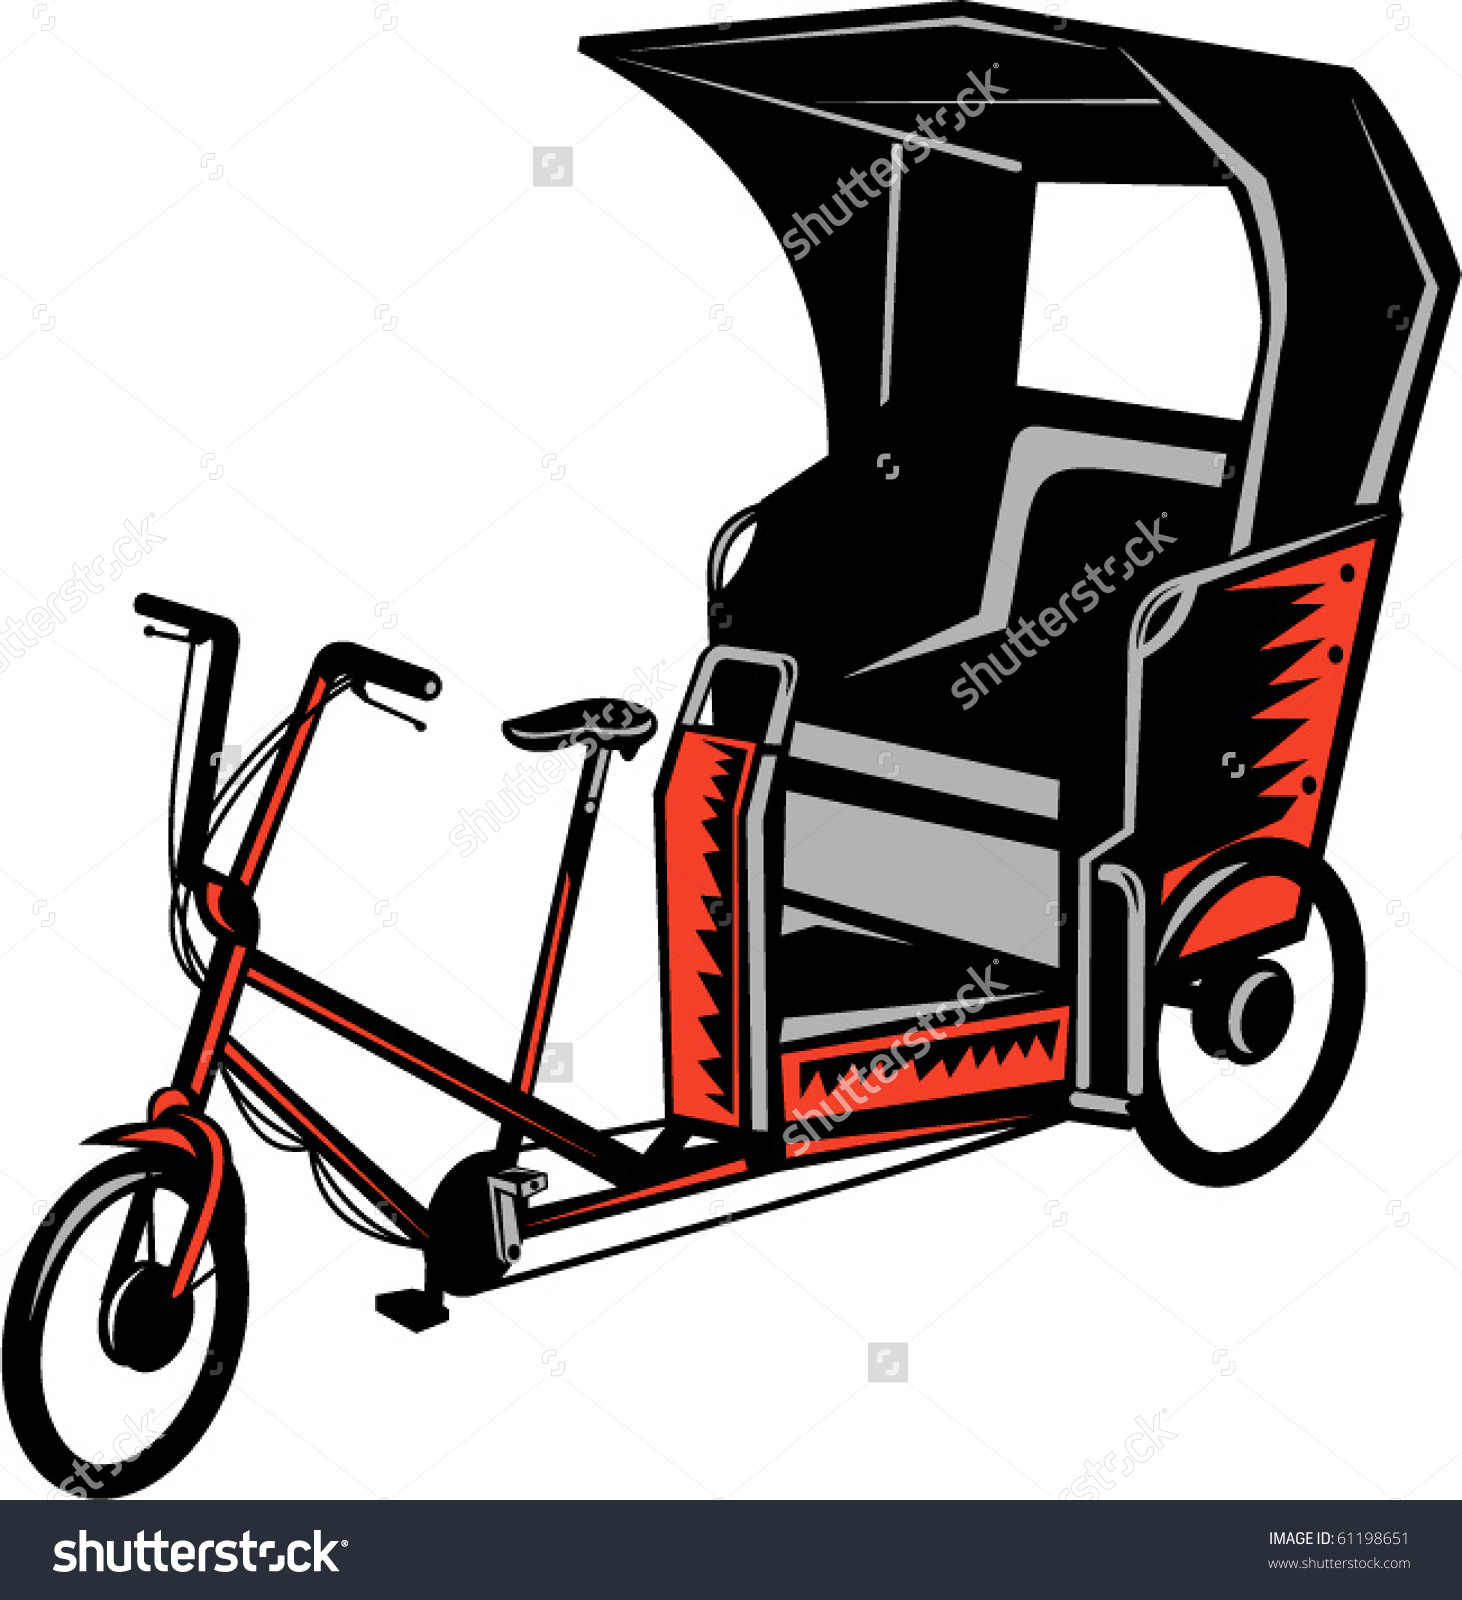 Cycle rickshaw clipart clip transparent stock Vector Illustration Cycle Rickshaw Isolated On Stock Vector ... clip transparent stock